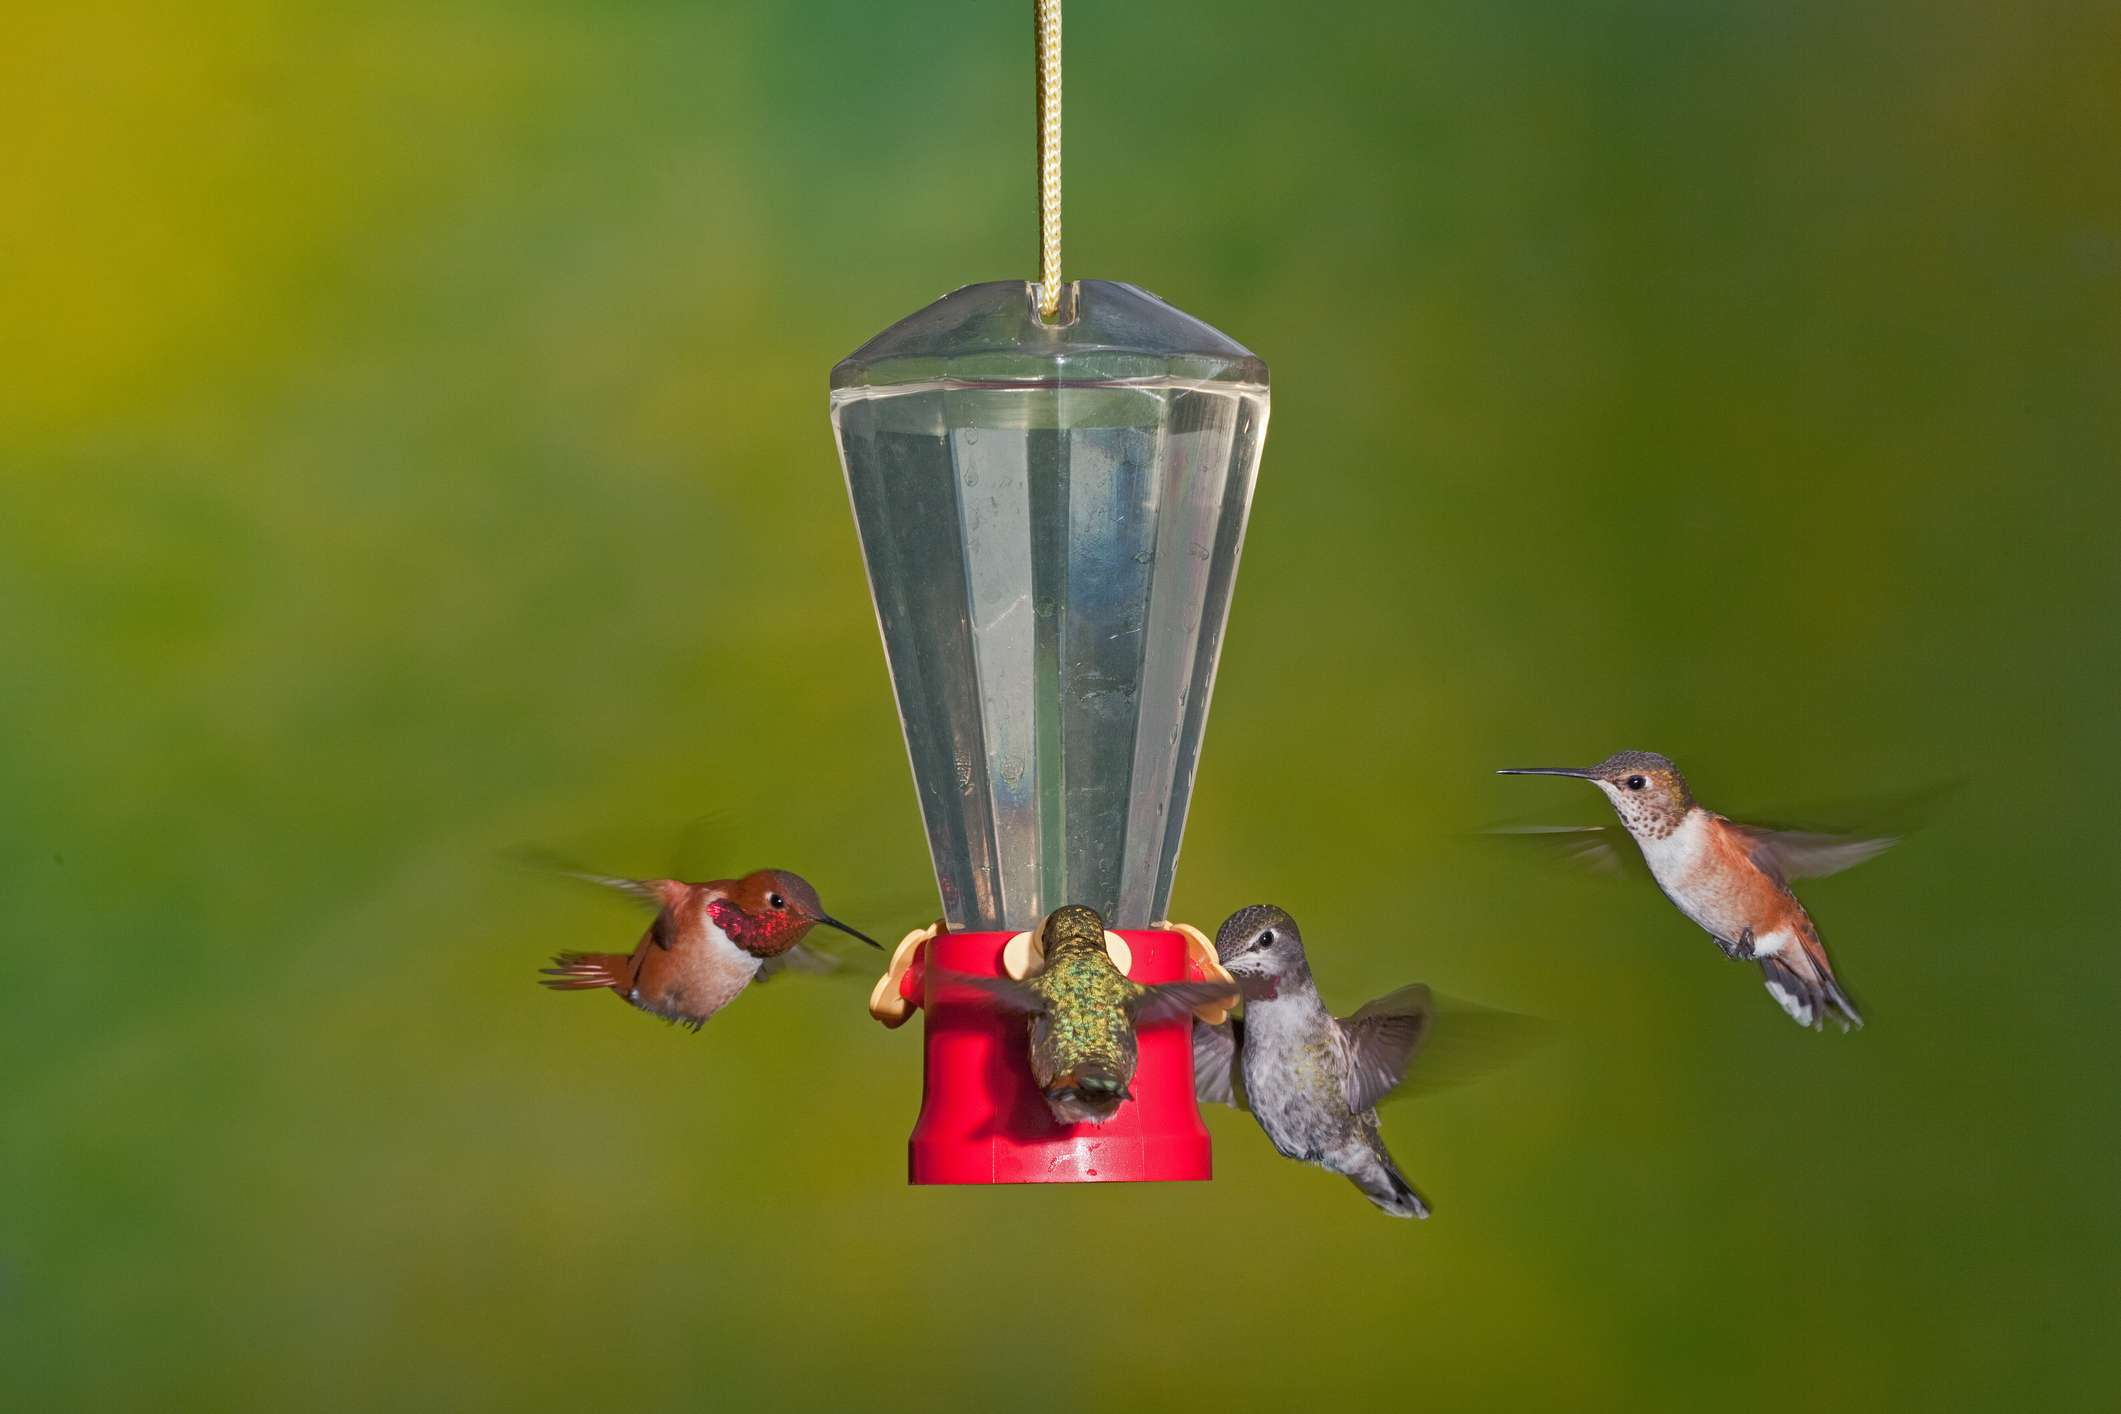 Four hummingbirds eating out of a hummingbird feeder.